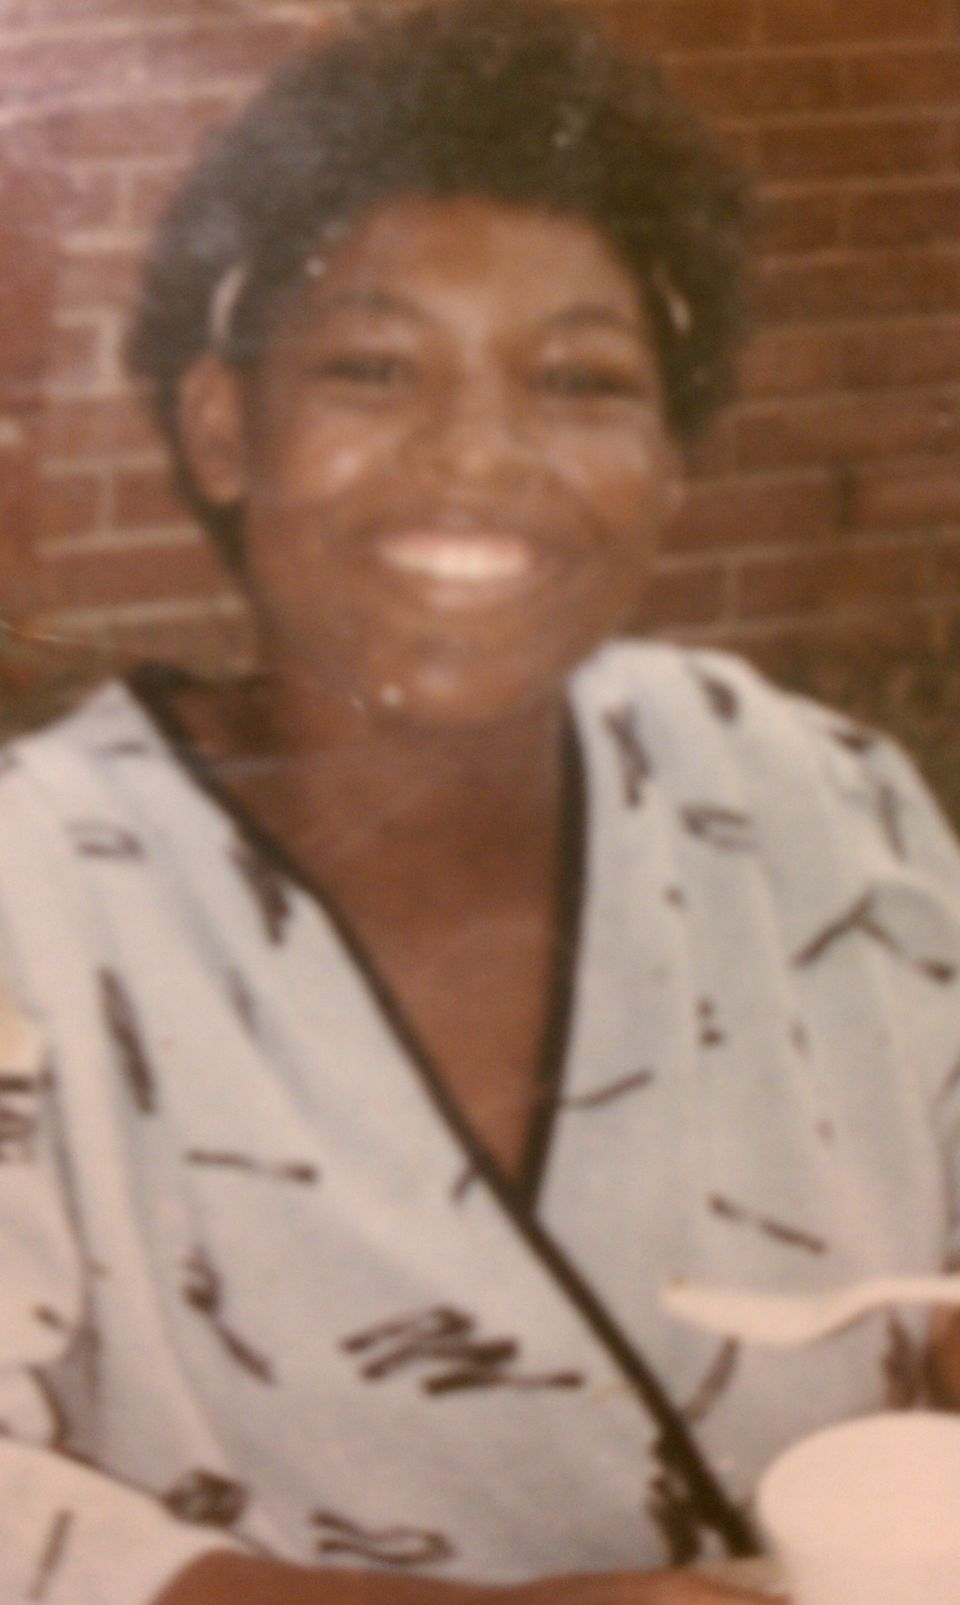 This photo was taken when Dannette Millbrook was 15 or 16 years of age.